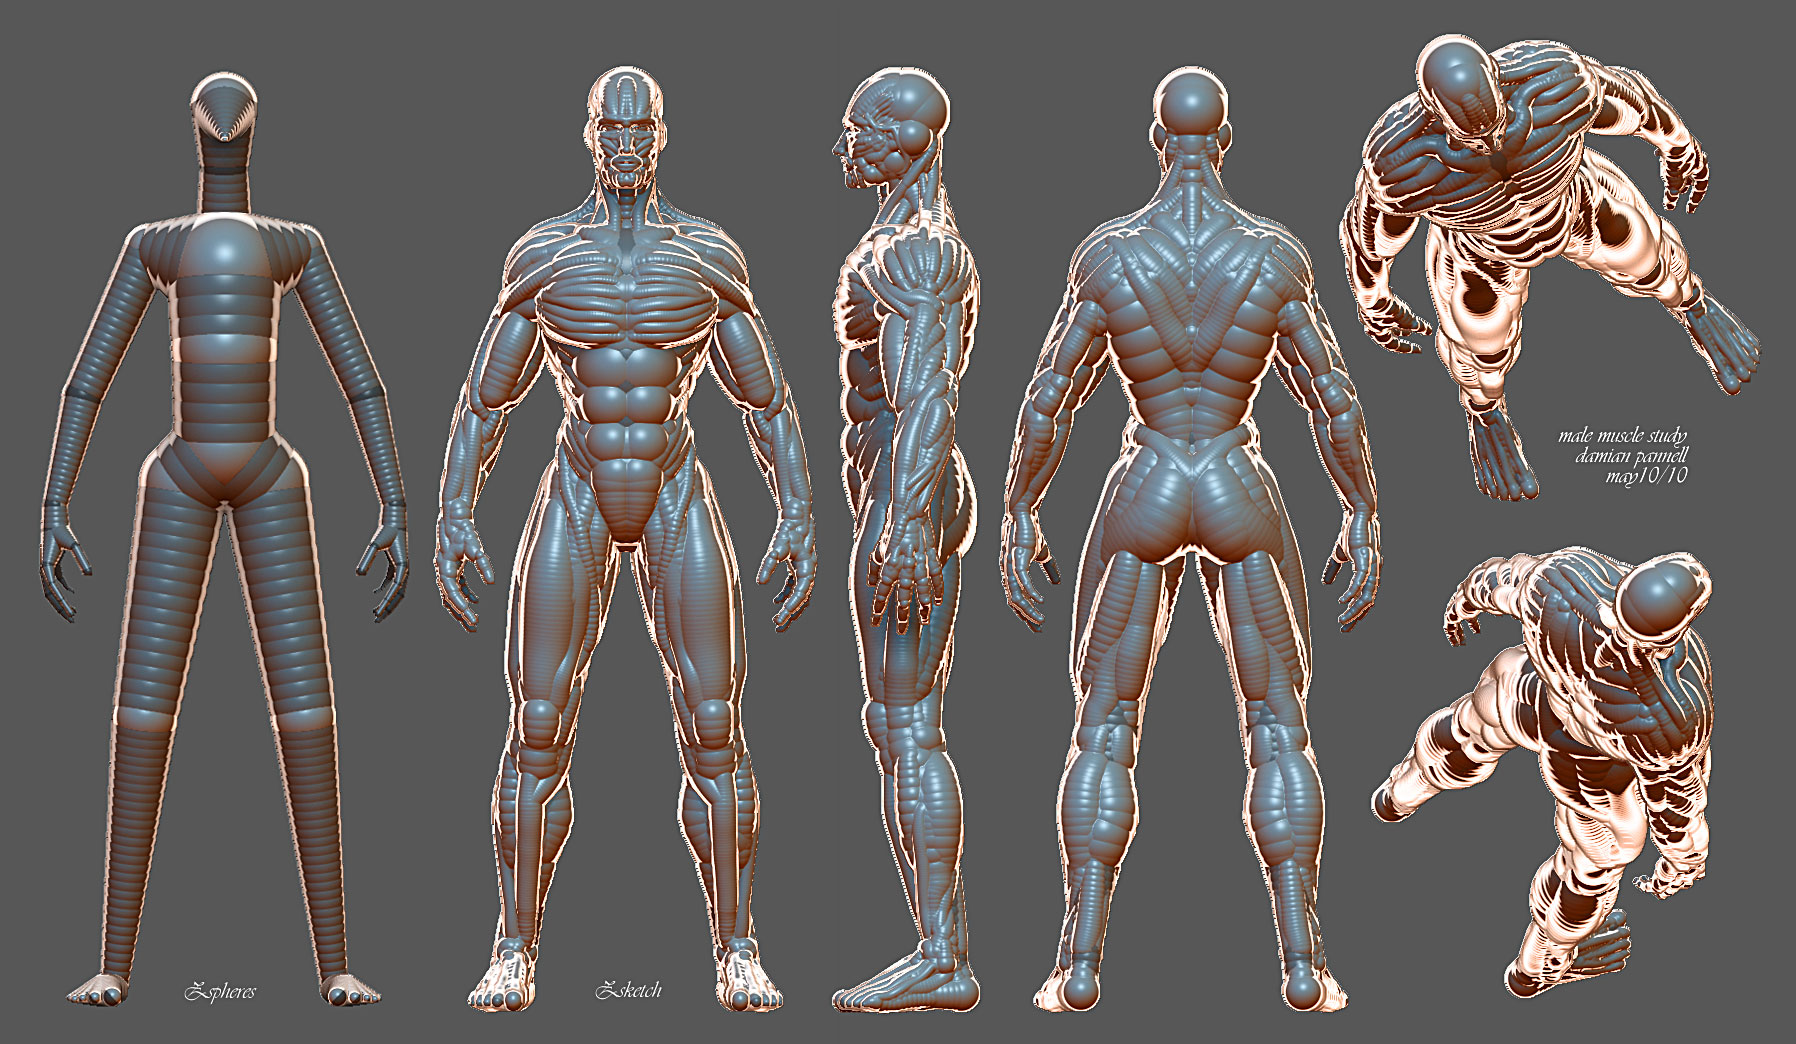 skinless human study, Muscles